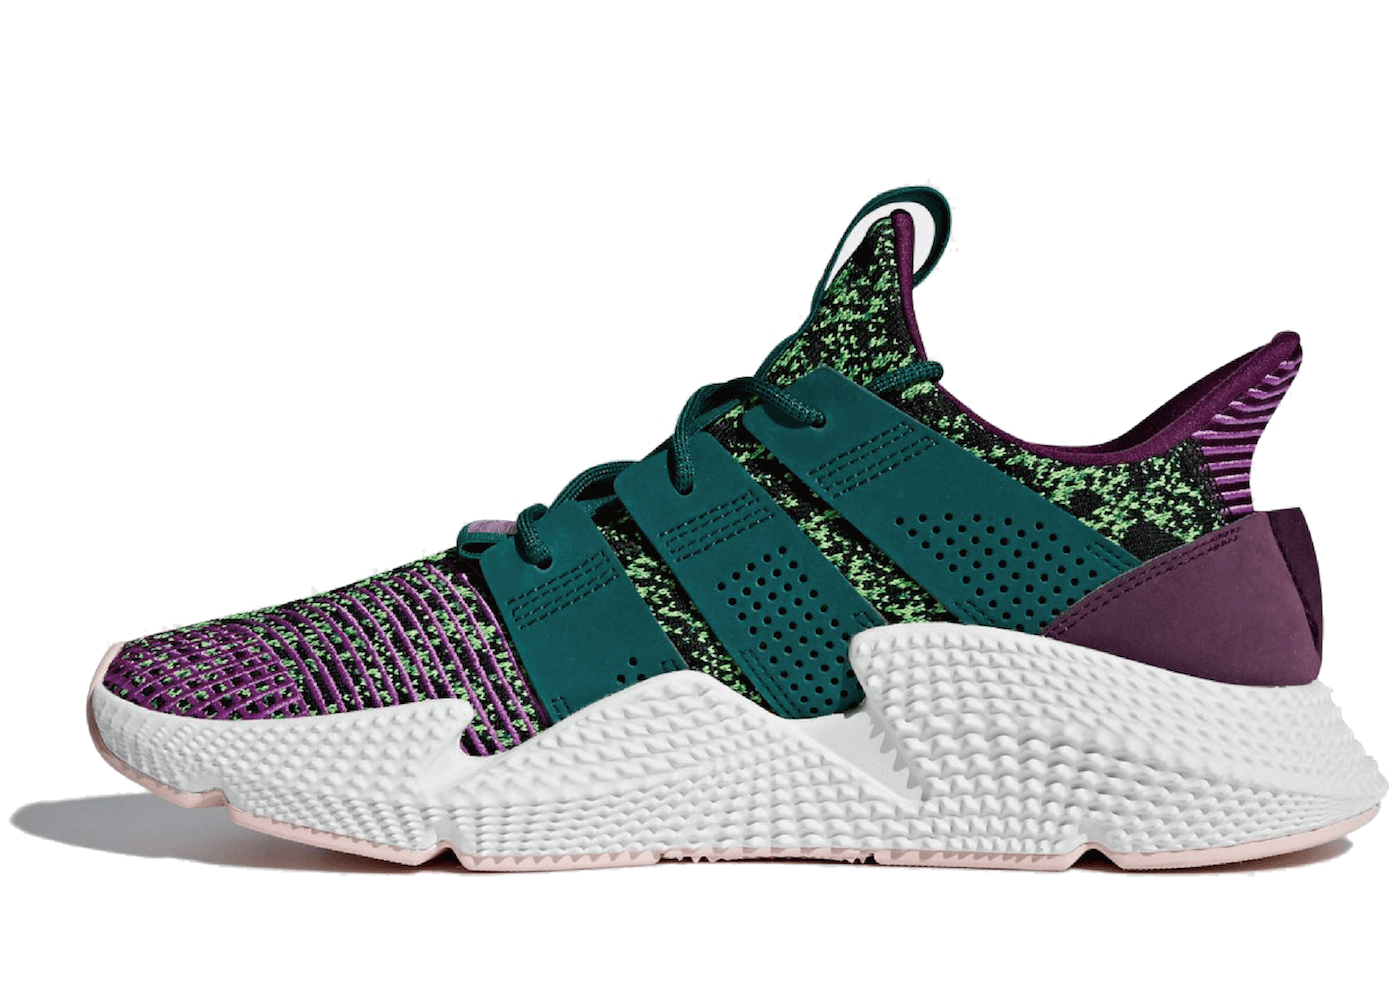 Adidas Prophere Dragon Ball Z Cellの写真